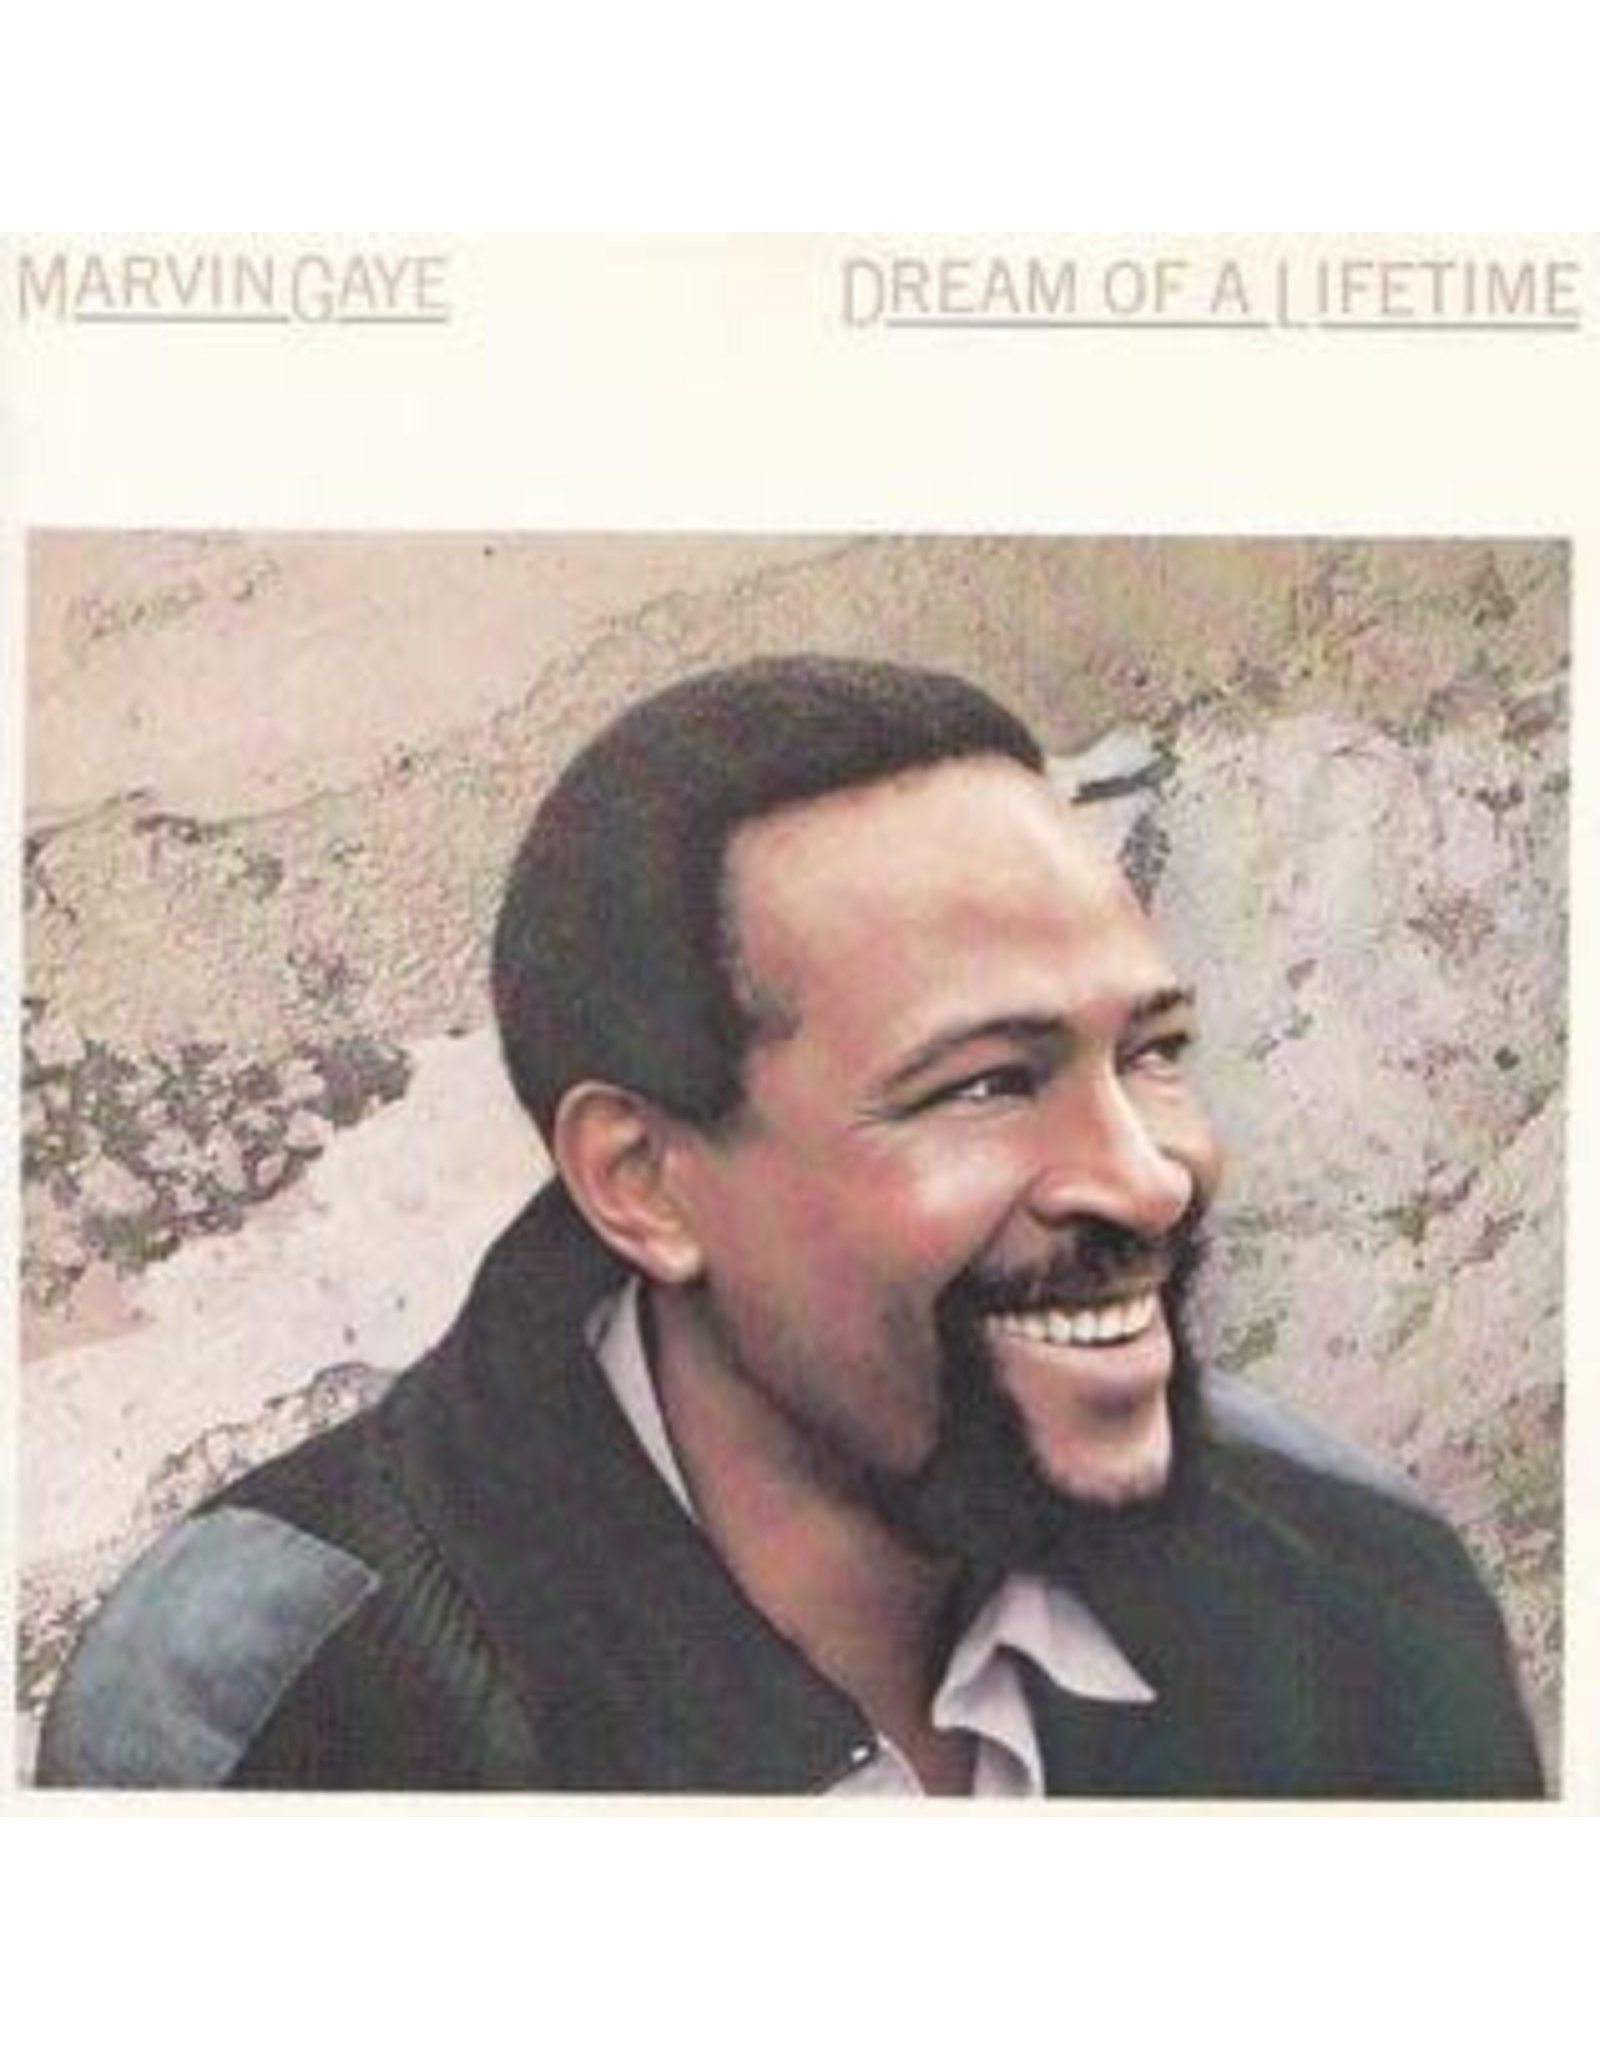 New Vinyl Marvin Gaye - Dream Of A Lifetime (Colored) LP